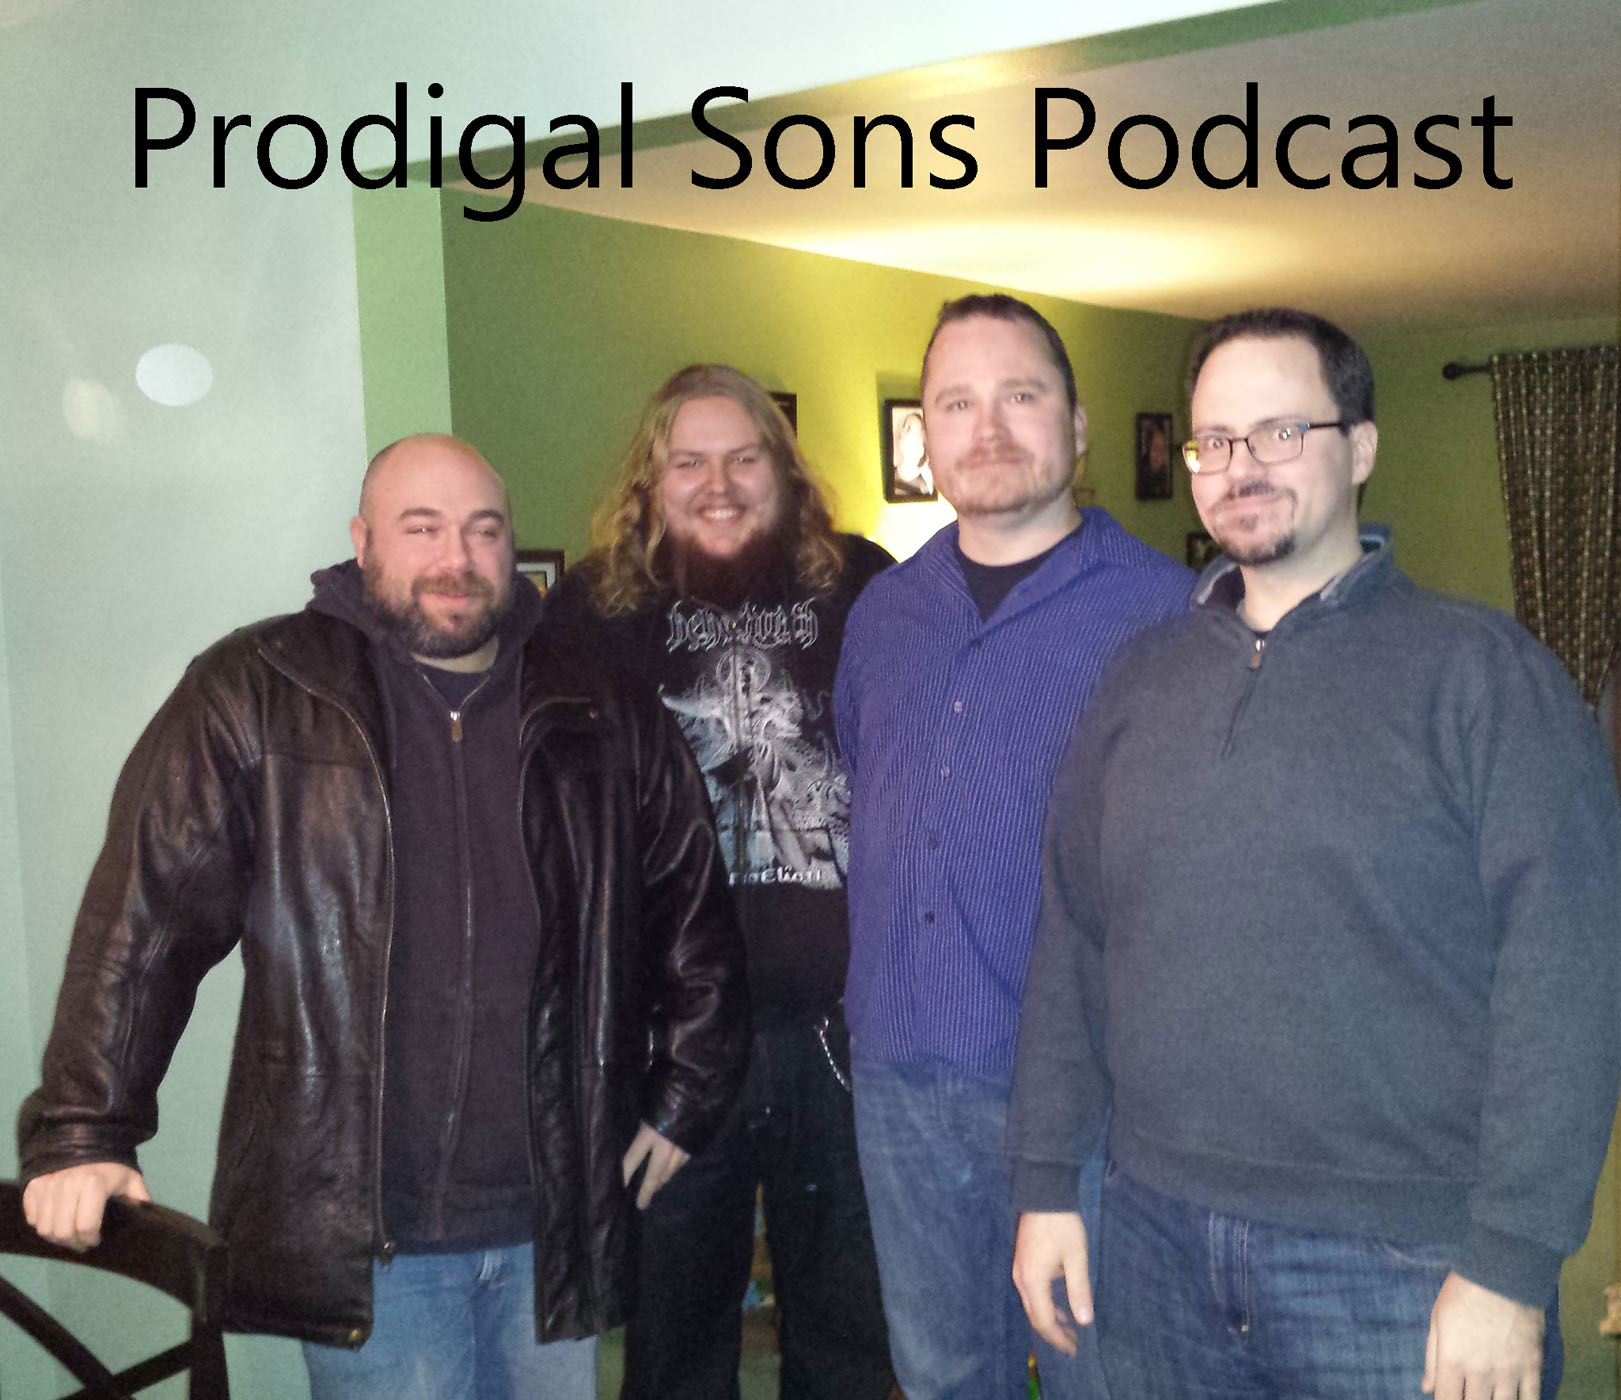 Prodigal Sons Podcast